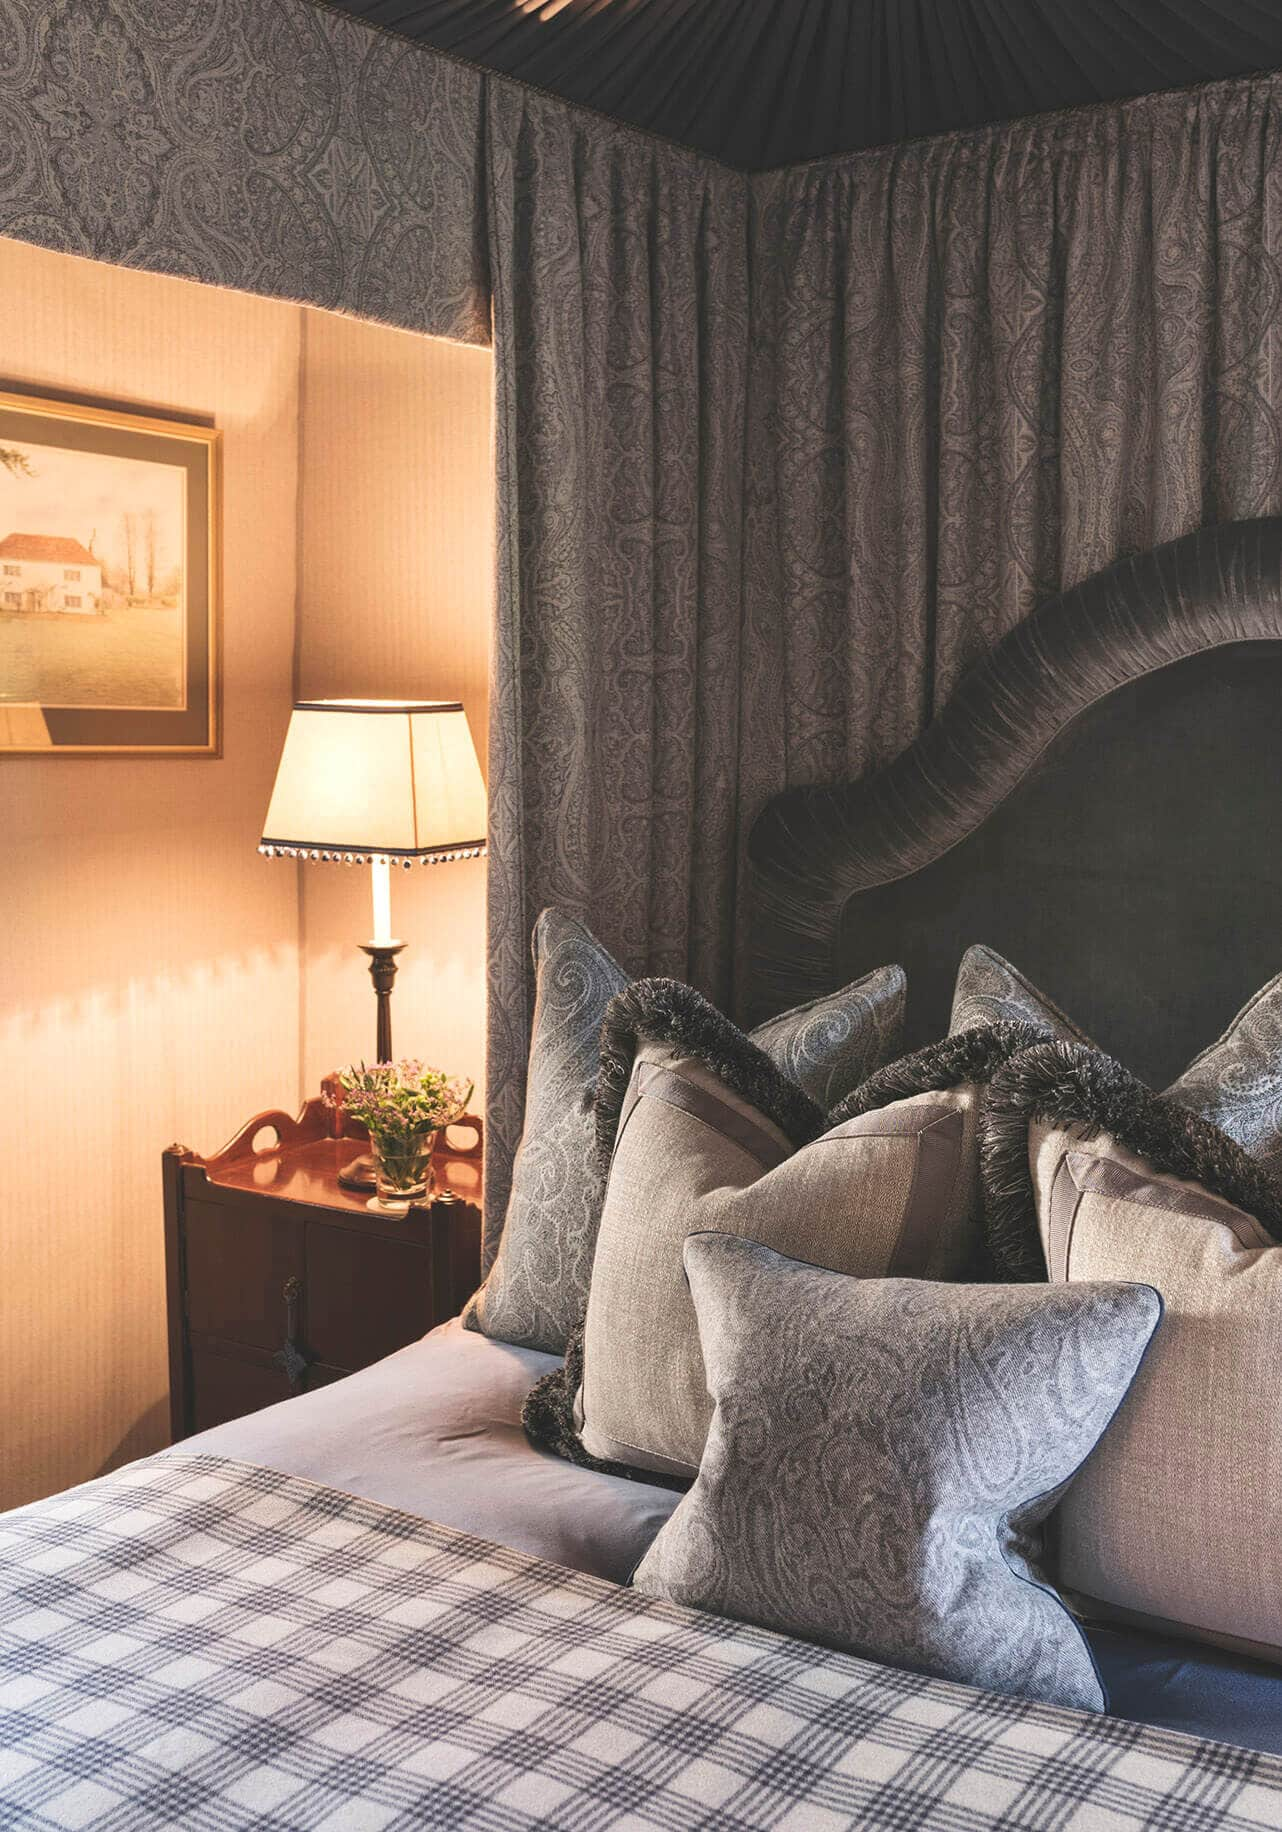 Bedroom in scottish castle project